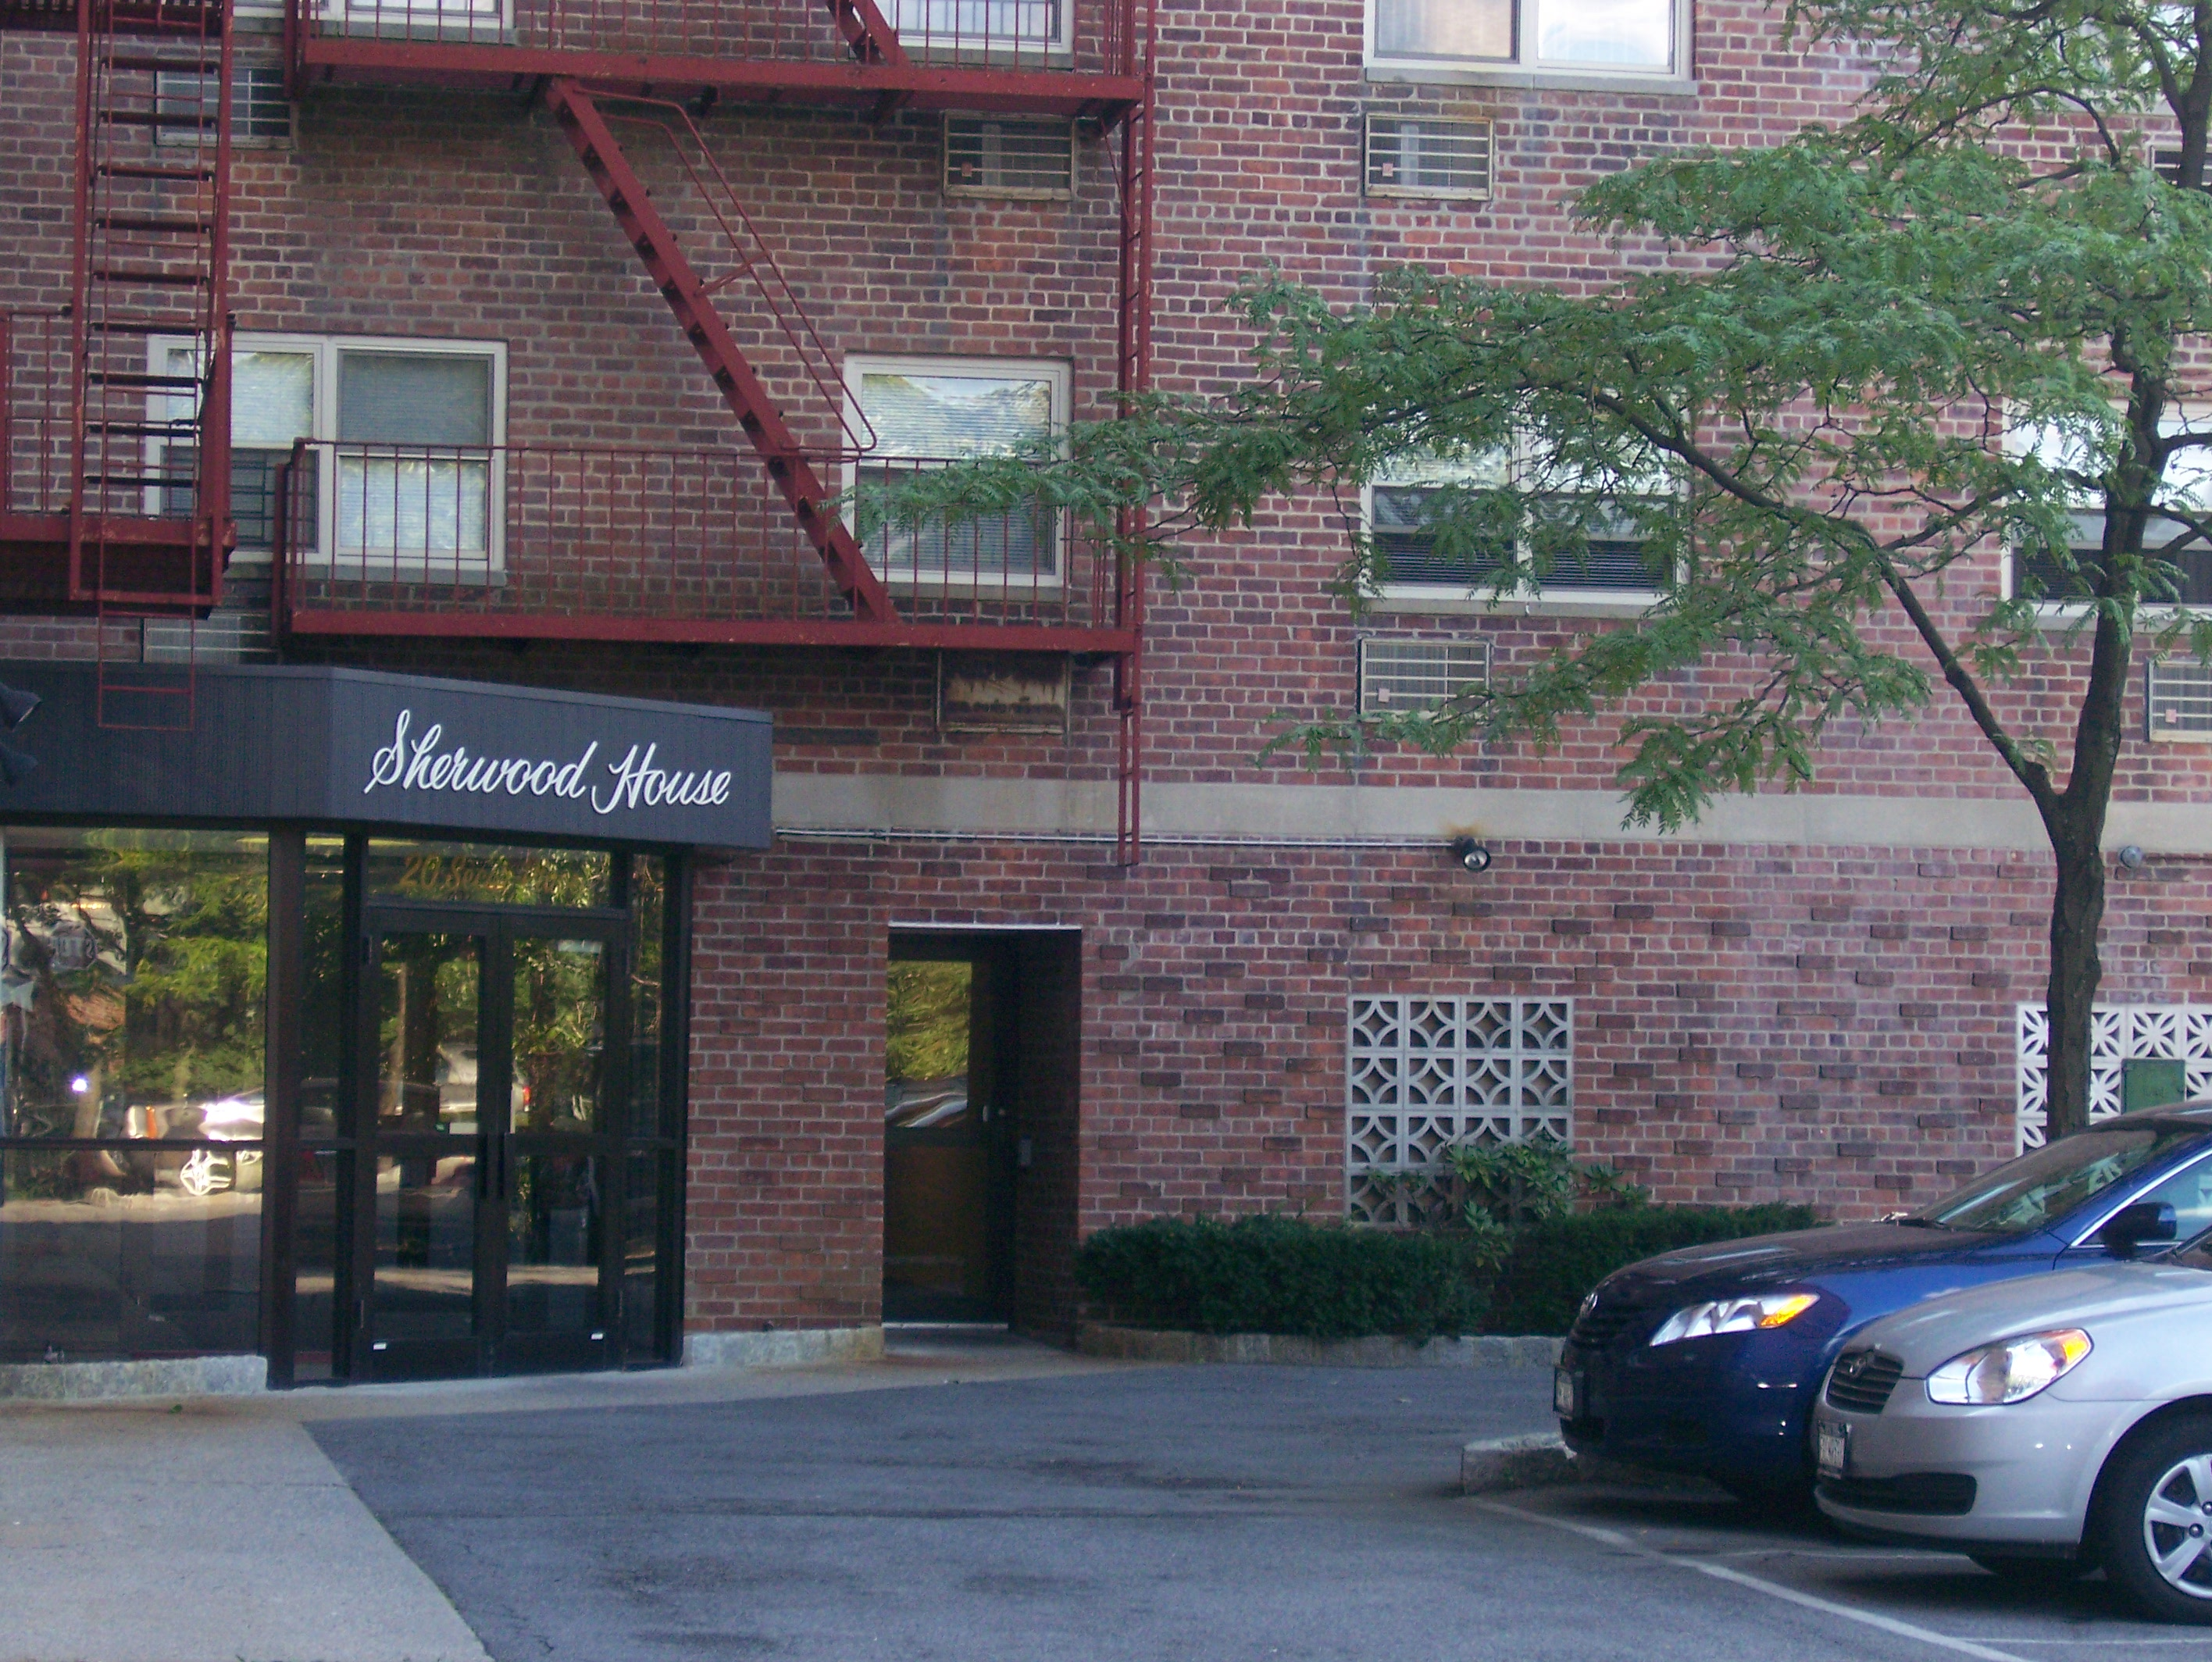 Yonkers coop and condos yonkers real estate for 4 glen terrace glenville ny